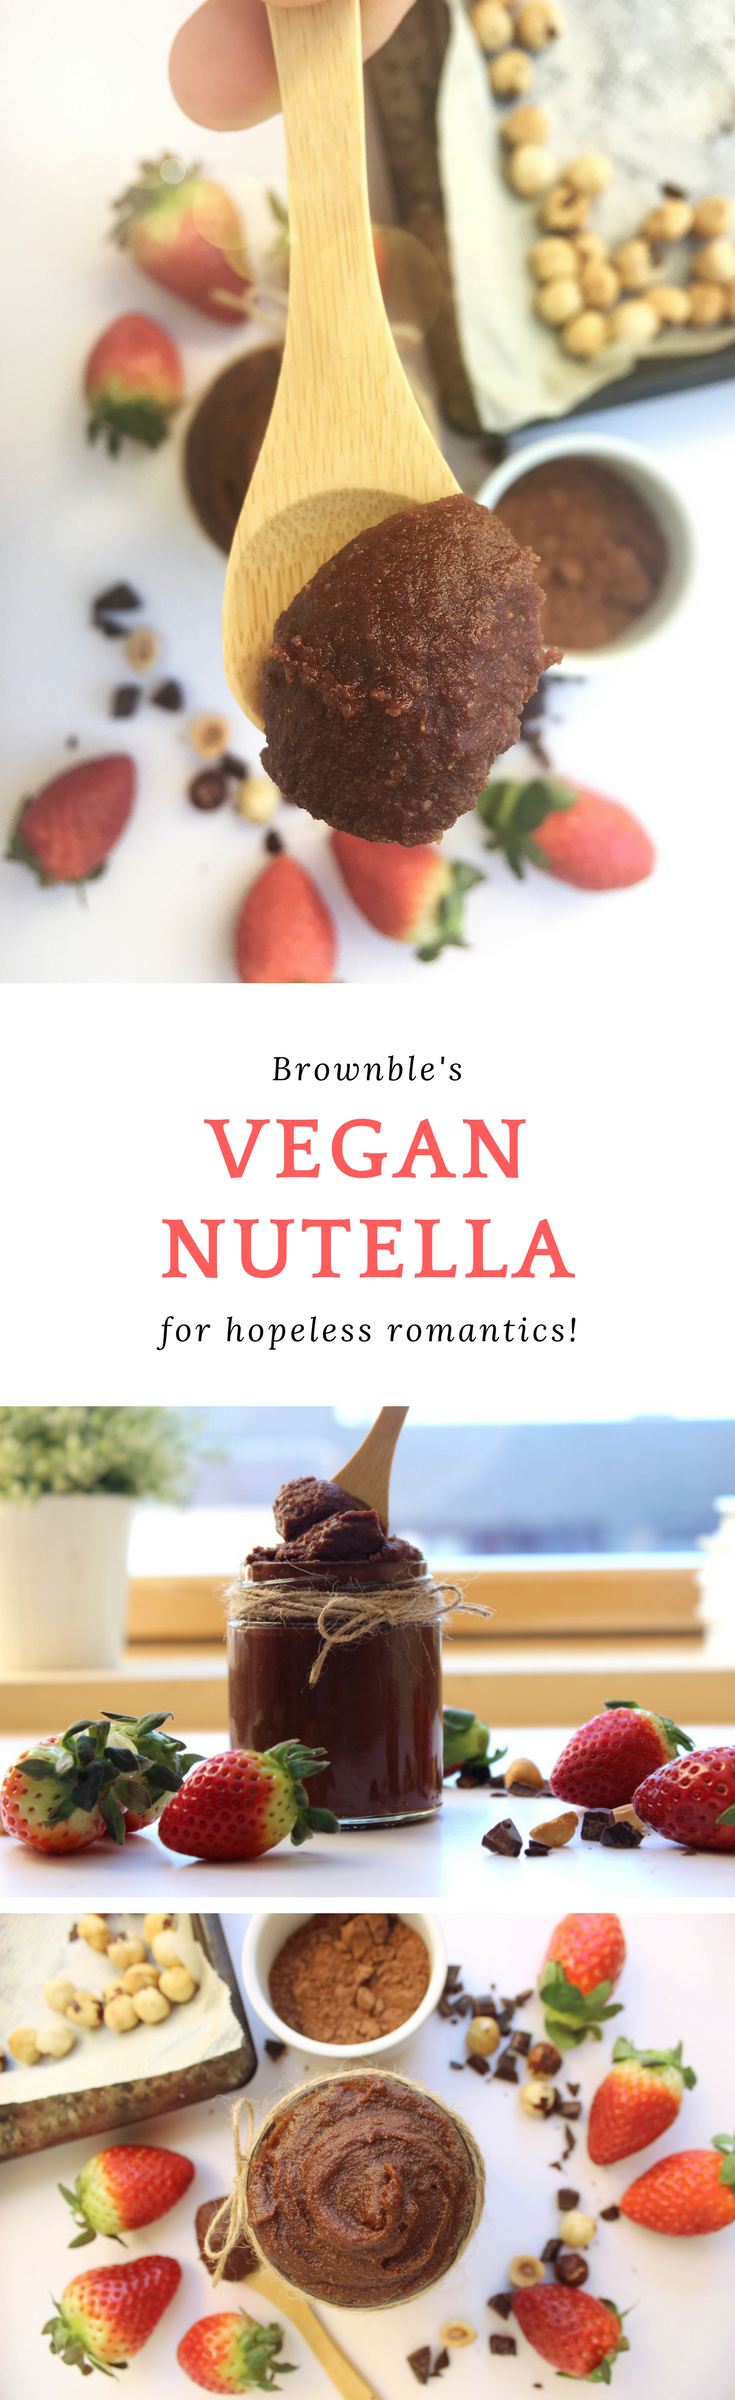 The best vegan nutella recipe! So creamy... You'll never guess what the secret ingredient is!